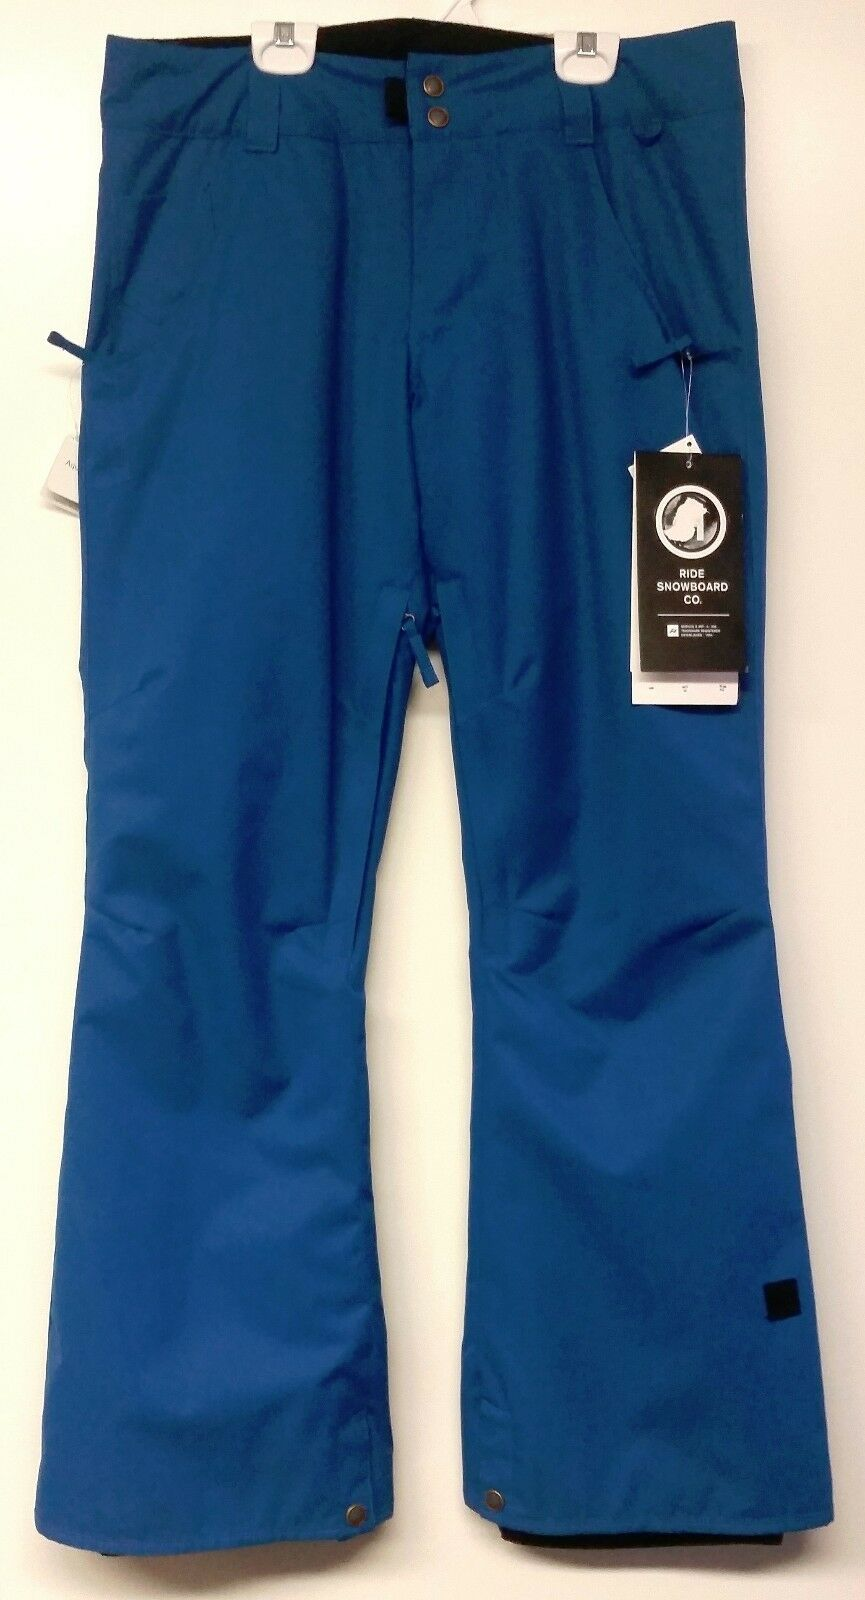 RIDE Women's EASTLAKE Snow Pants -  Royal bluee - Medium - NWT  all goods are specials